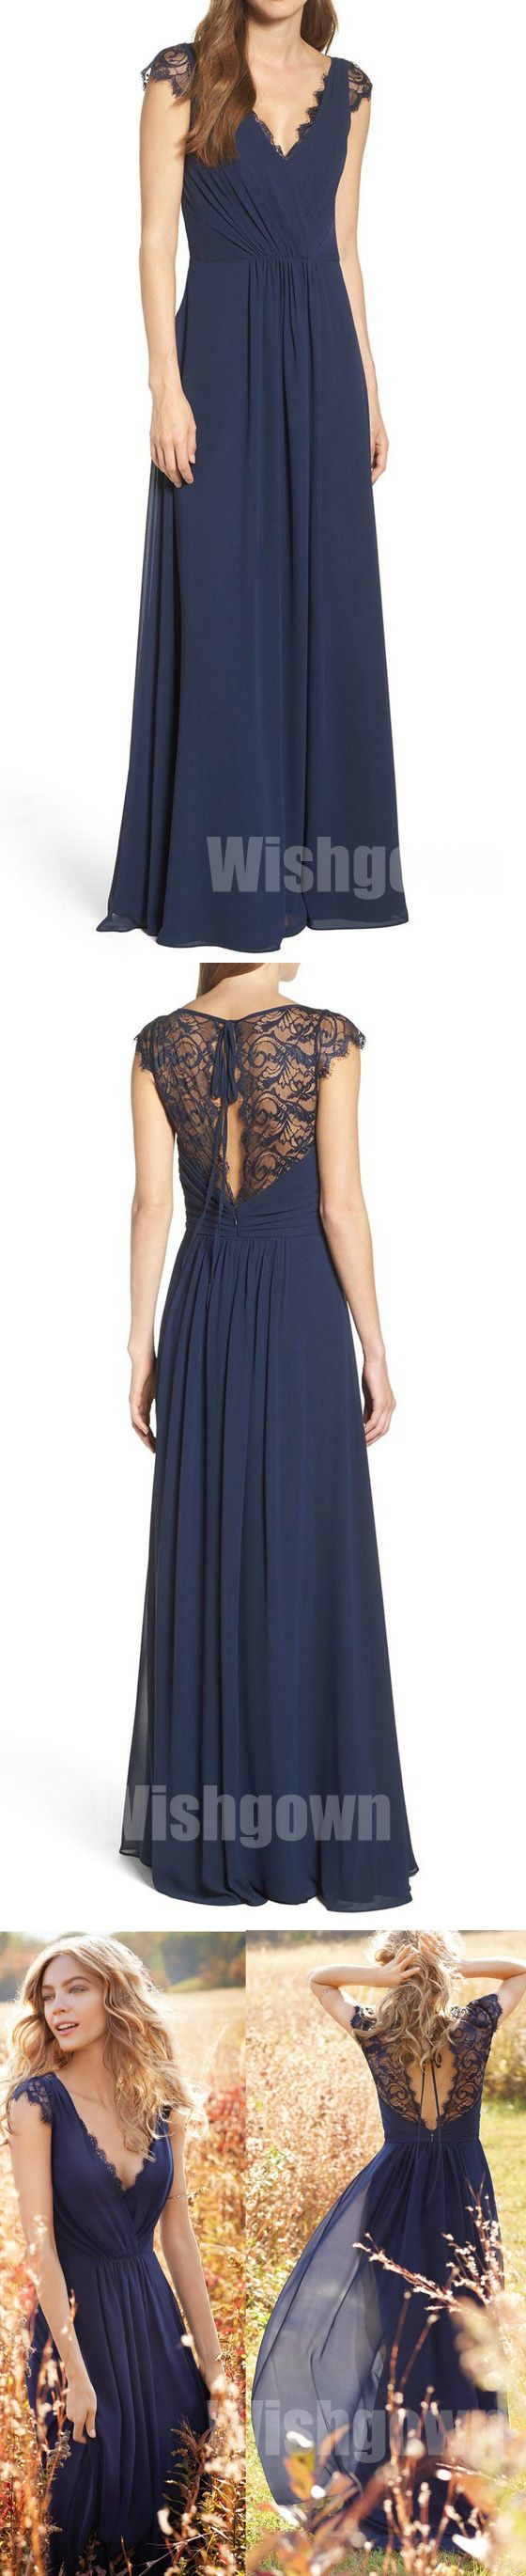 Cap Sleeves Lace Chiffon Navy Blue Elegant Long Bridesmaid Dresses, WG460 #bridesmaids #weddingpartydress